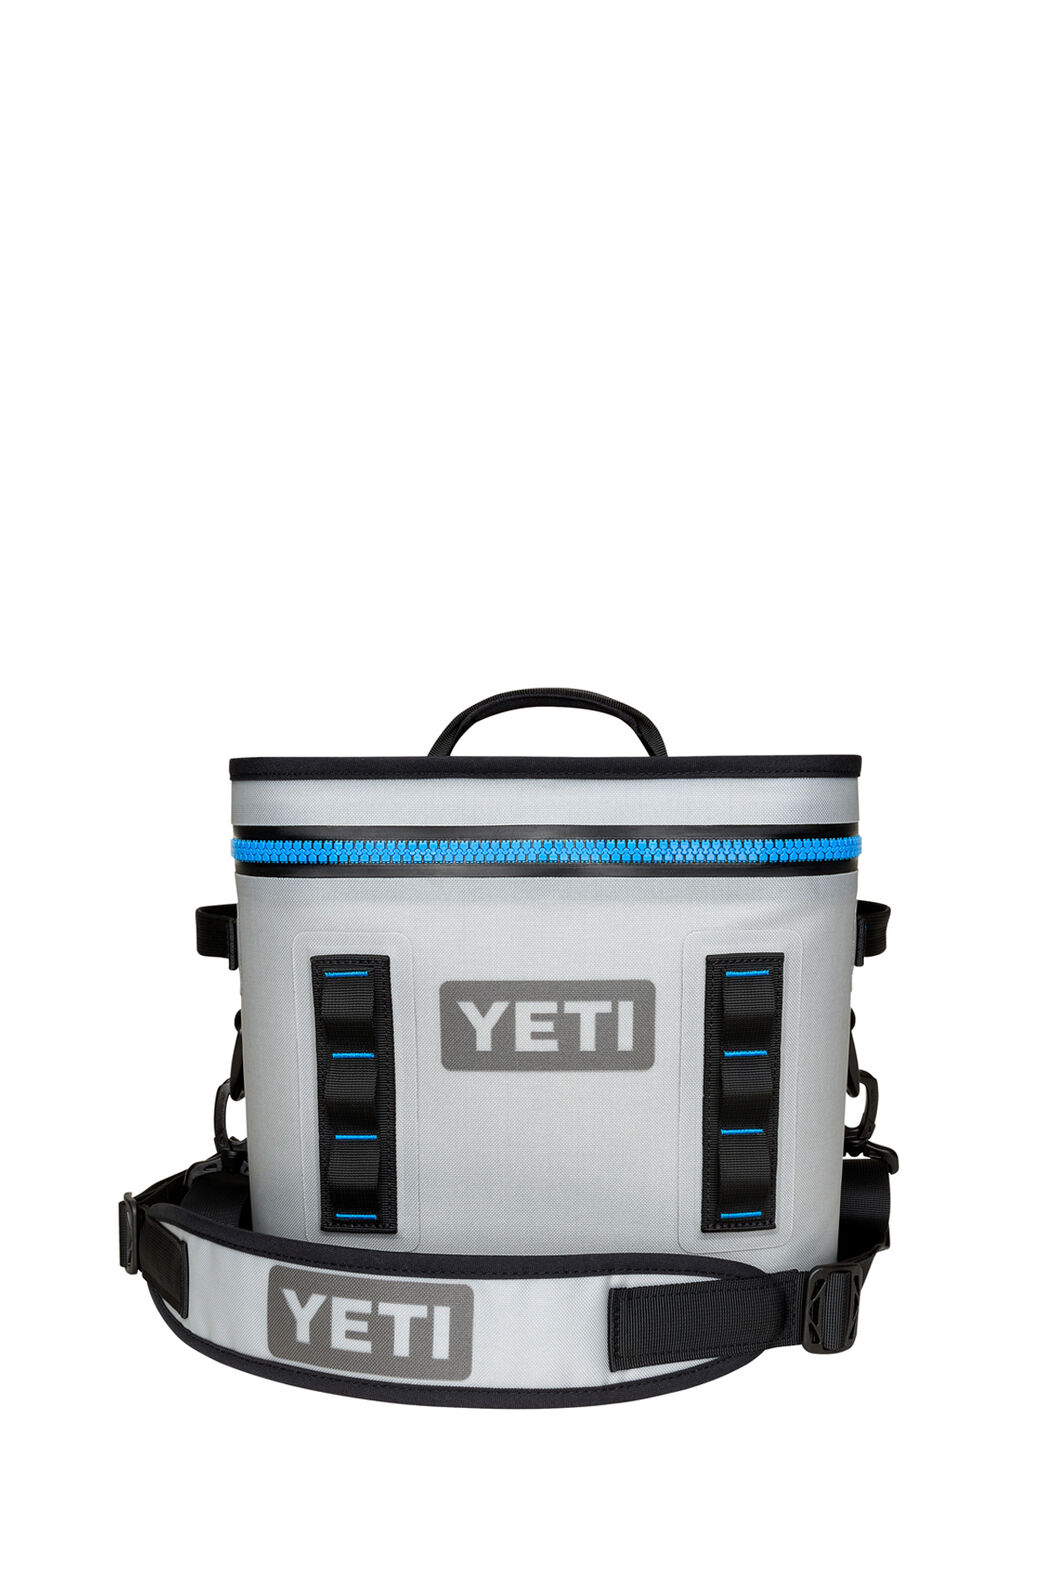 Yeti Hopper Flip Soft Cooler, Grey, hi-res